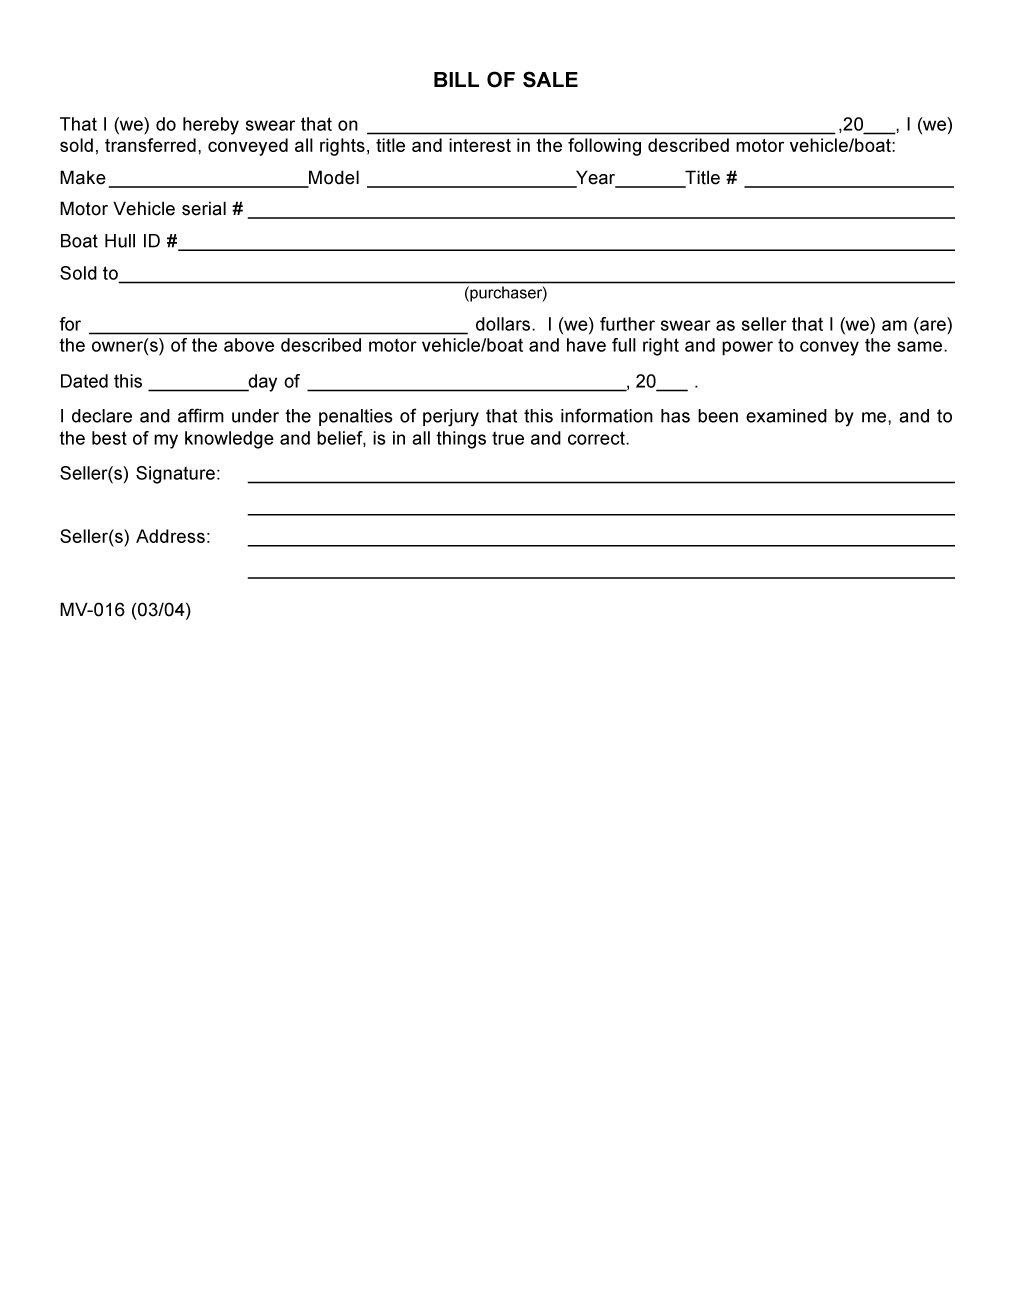 bill-of-sale-template-33